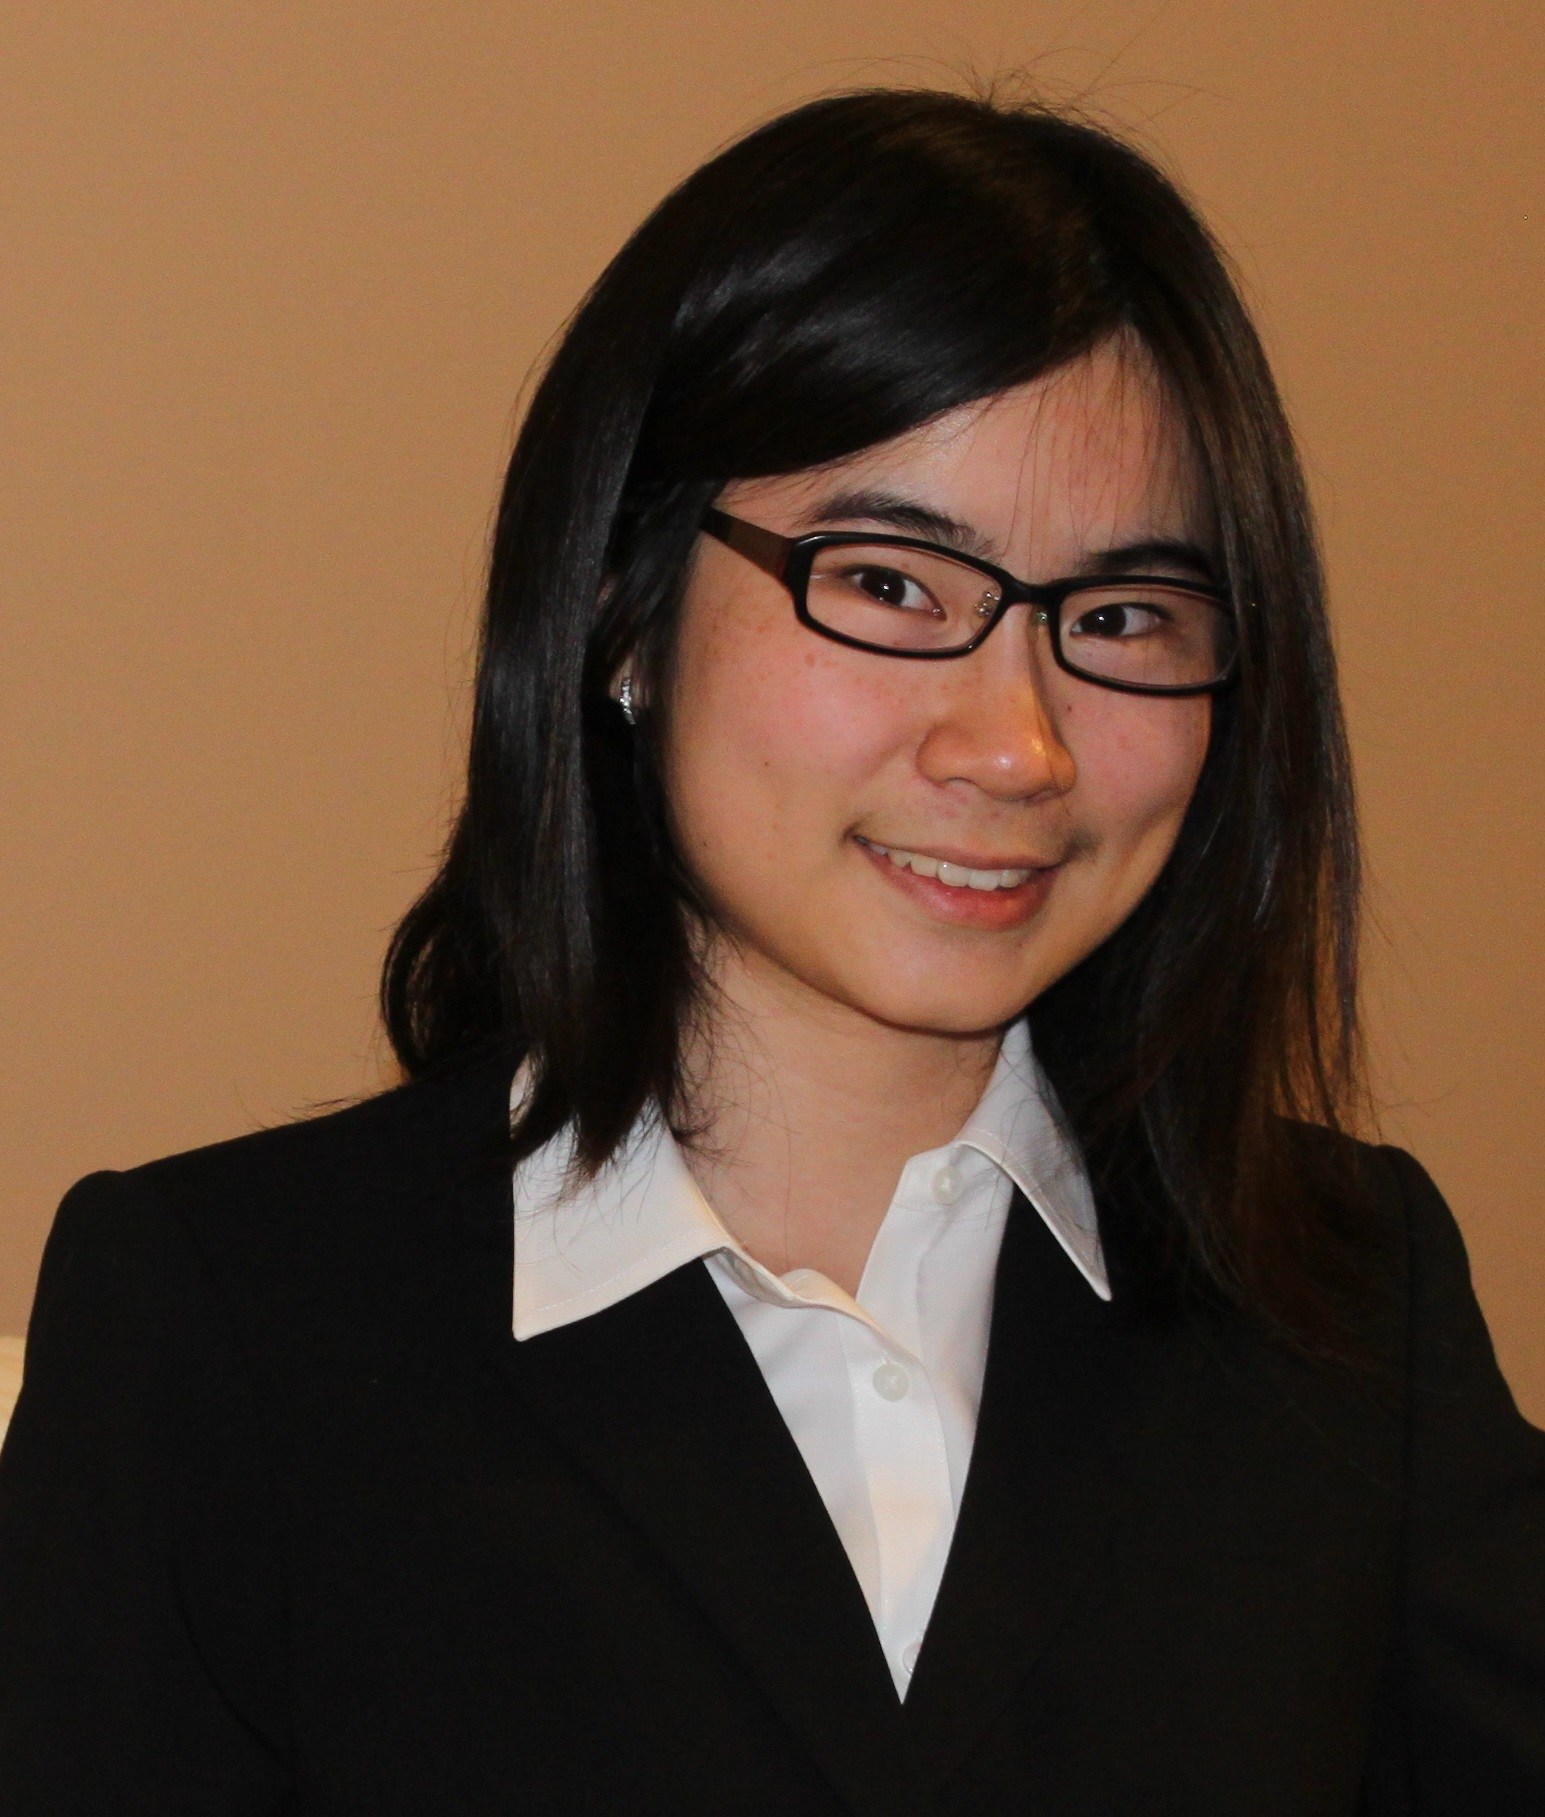 Sherry Chao, is a graduate research assistant in the UNC School of Medicine Department of Genetics.